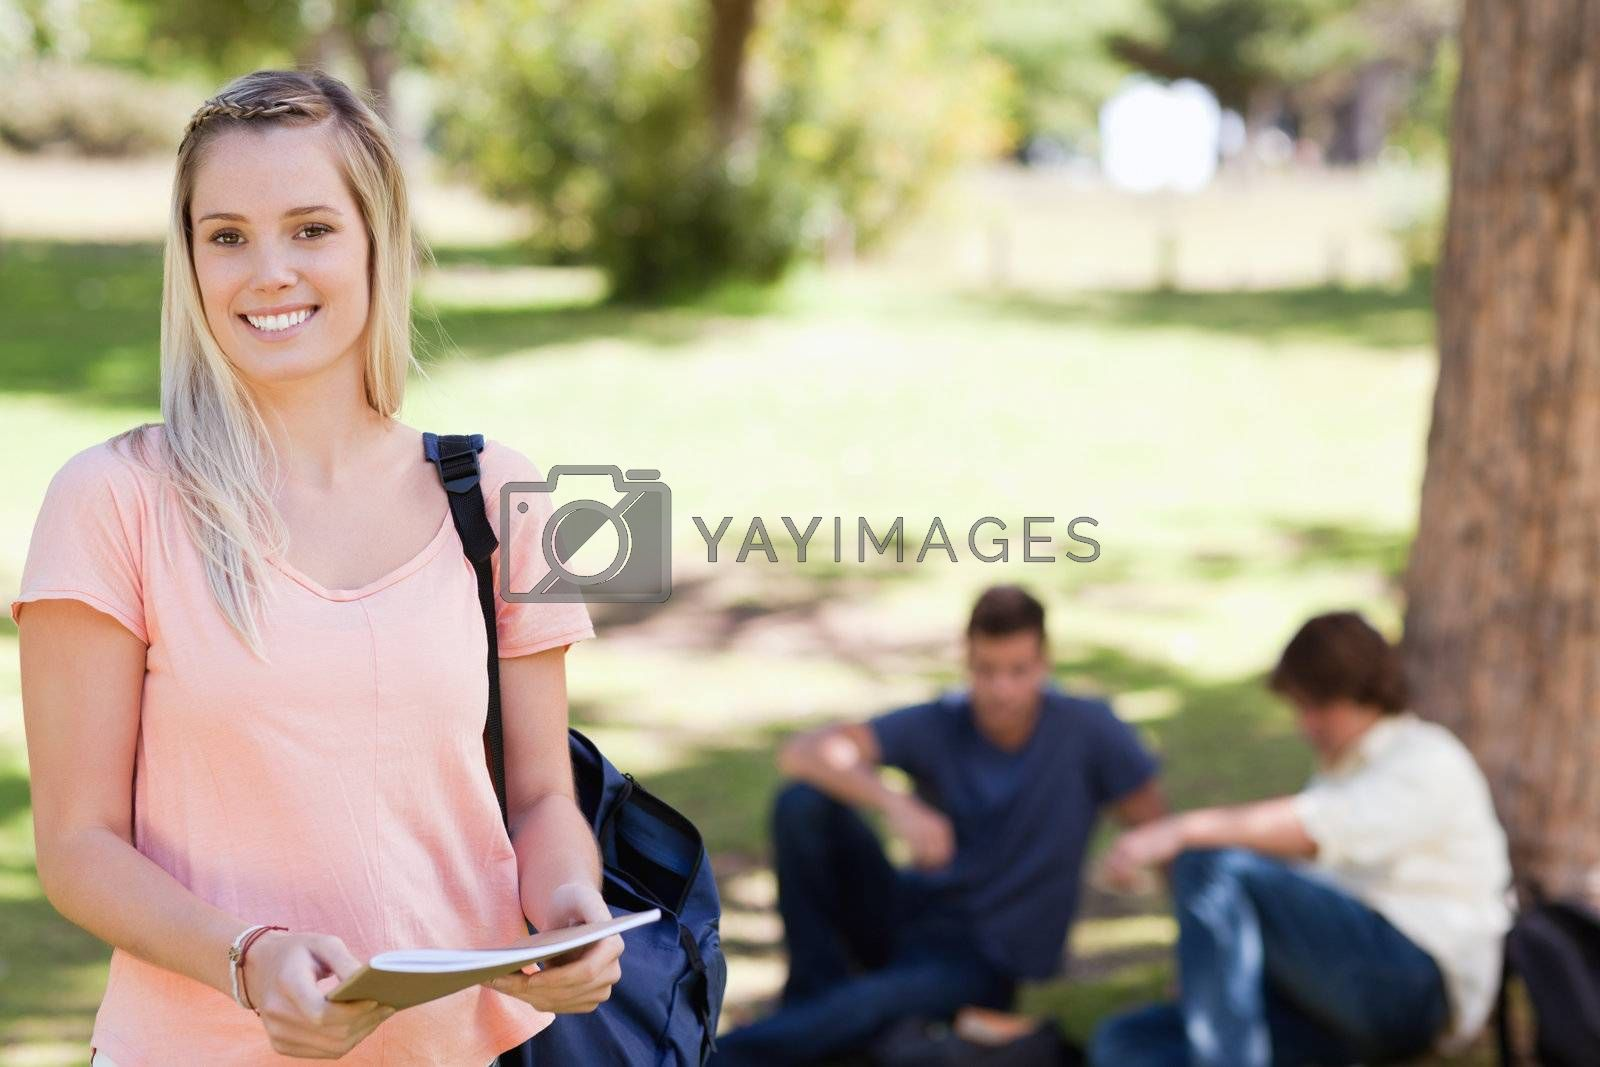 Portrait of a female student smiling while holding a textbook in a park with friends in background